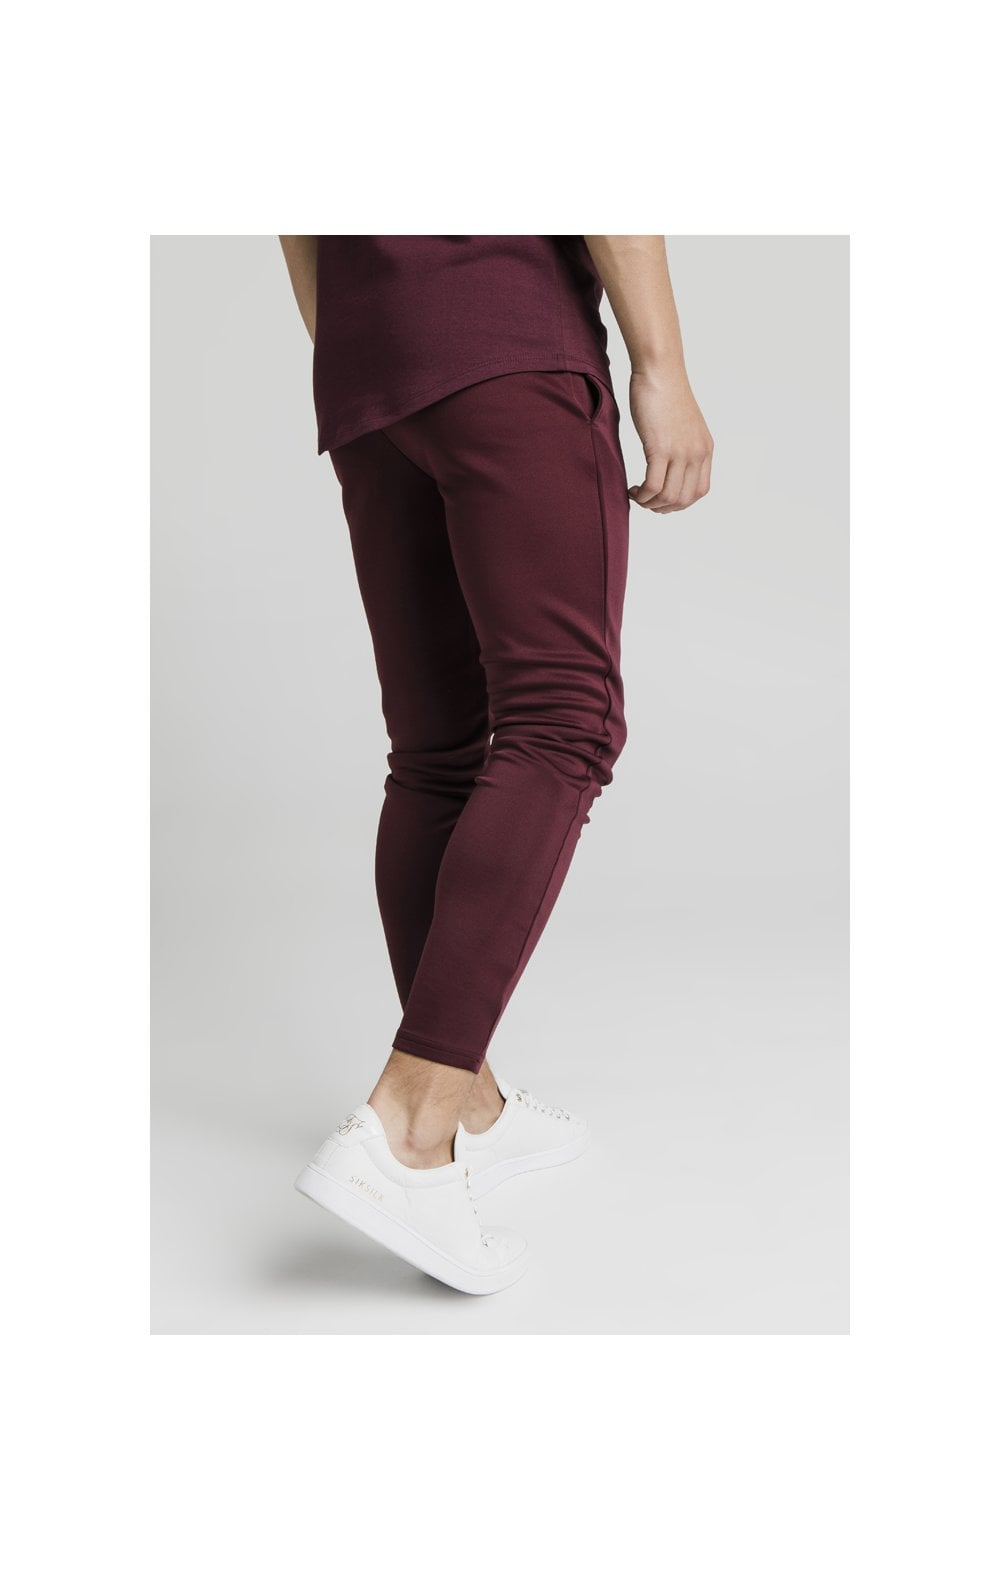 Illusive London Agility Track Pants - Burgundy (2)